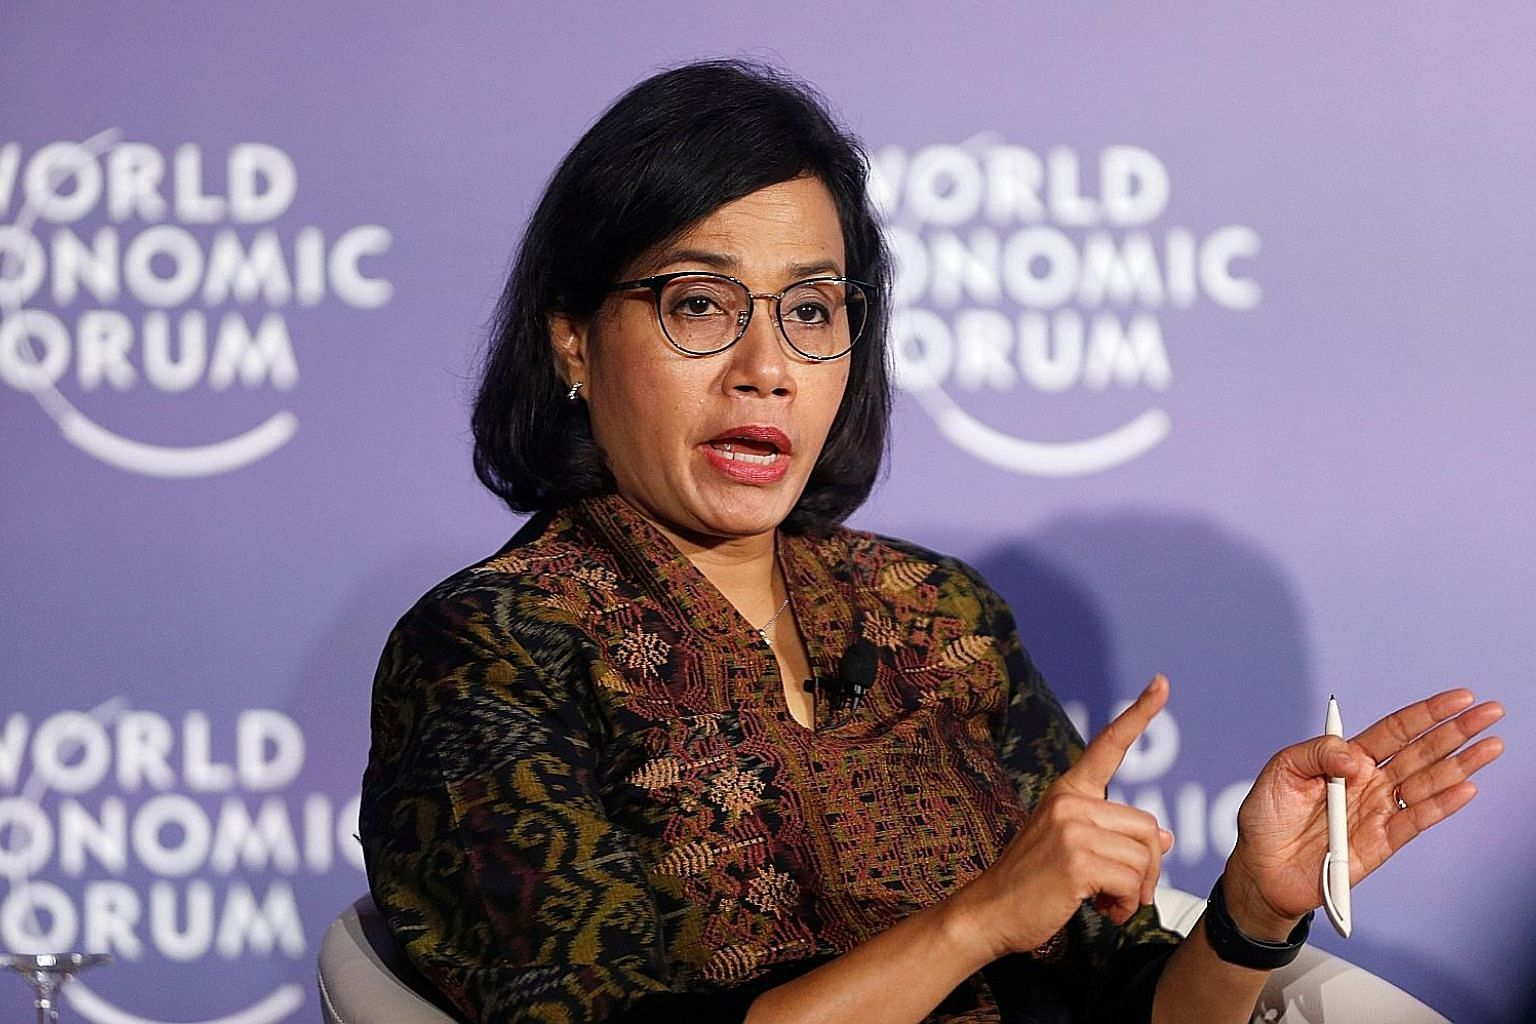 Indonesian Finance Minister Sri Mulyani Indrawati says Asean will have to think about what kind of integration it wants and how it can be improved, as technology accelerates economic transformation and widens the gulf between the haves and have-nots.